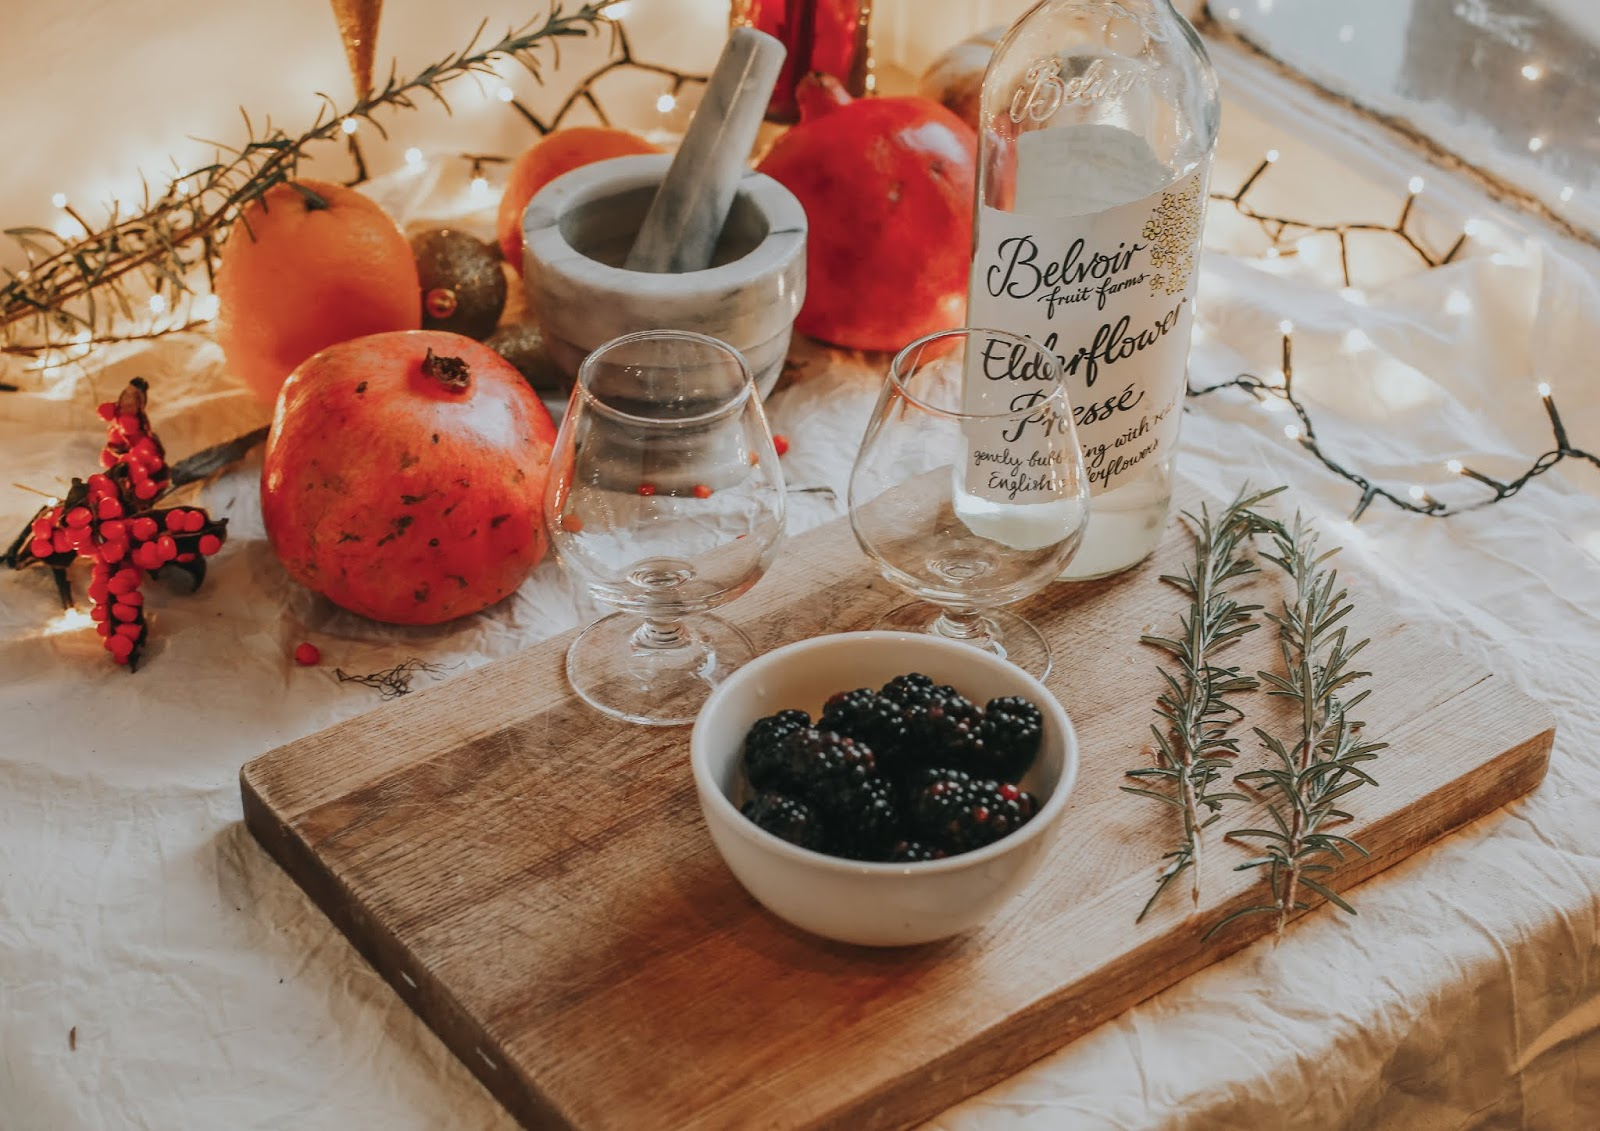 Rêveuse Recipe: Blackberry, Rosemary and Elderflower Spritz